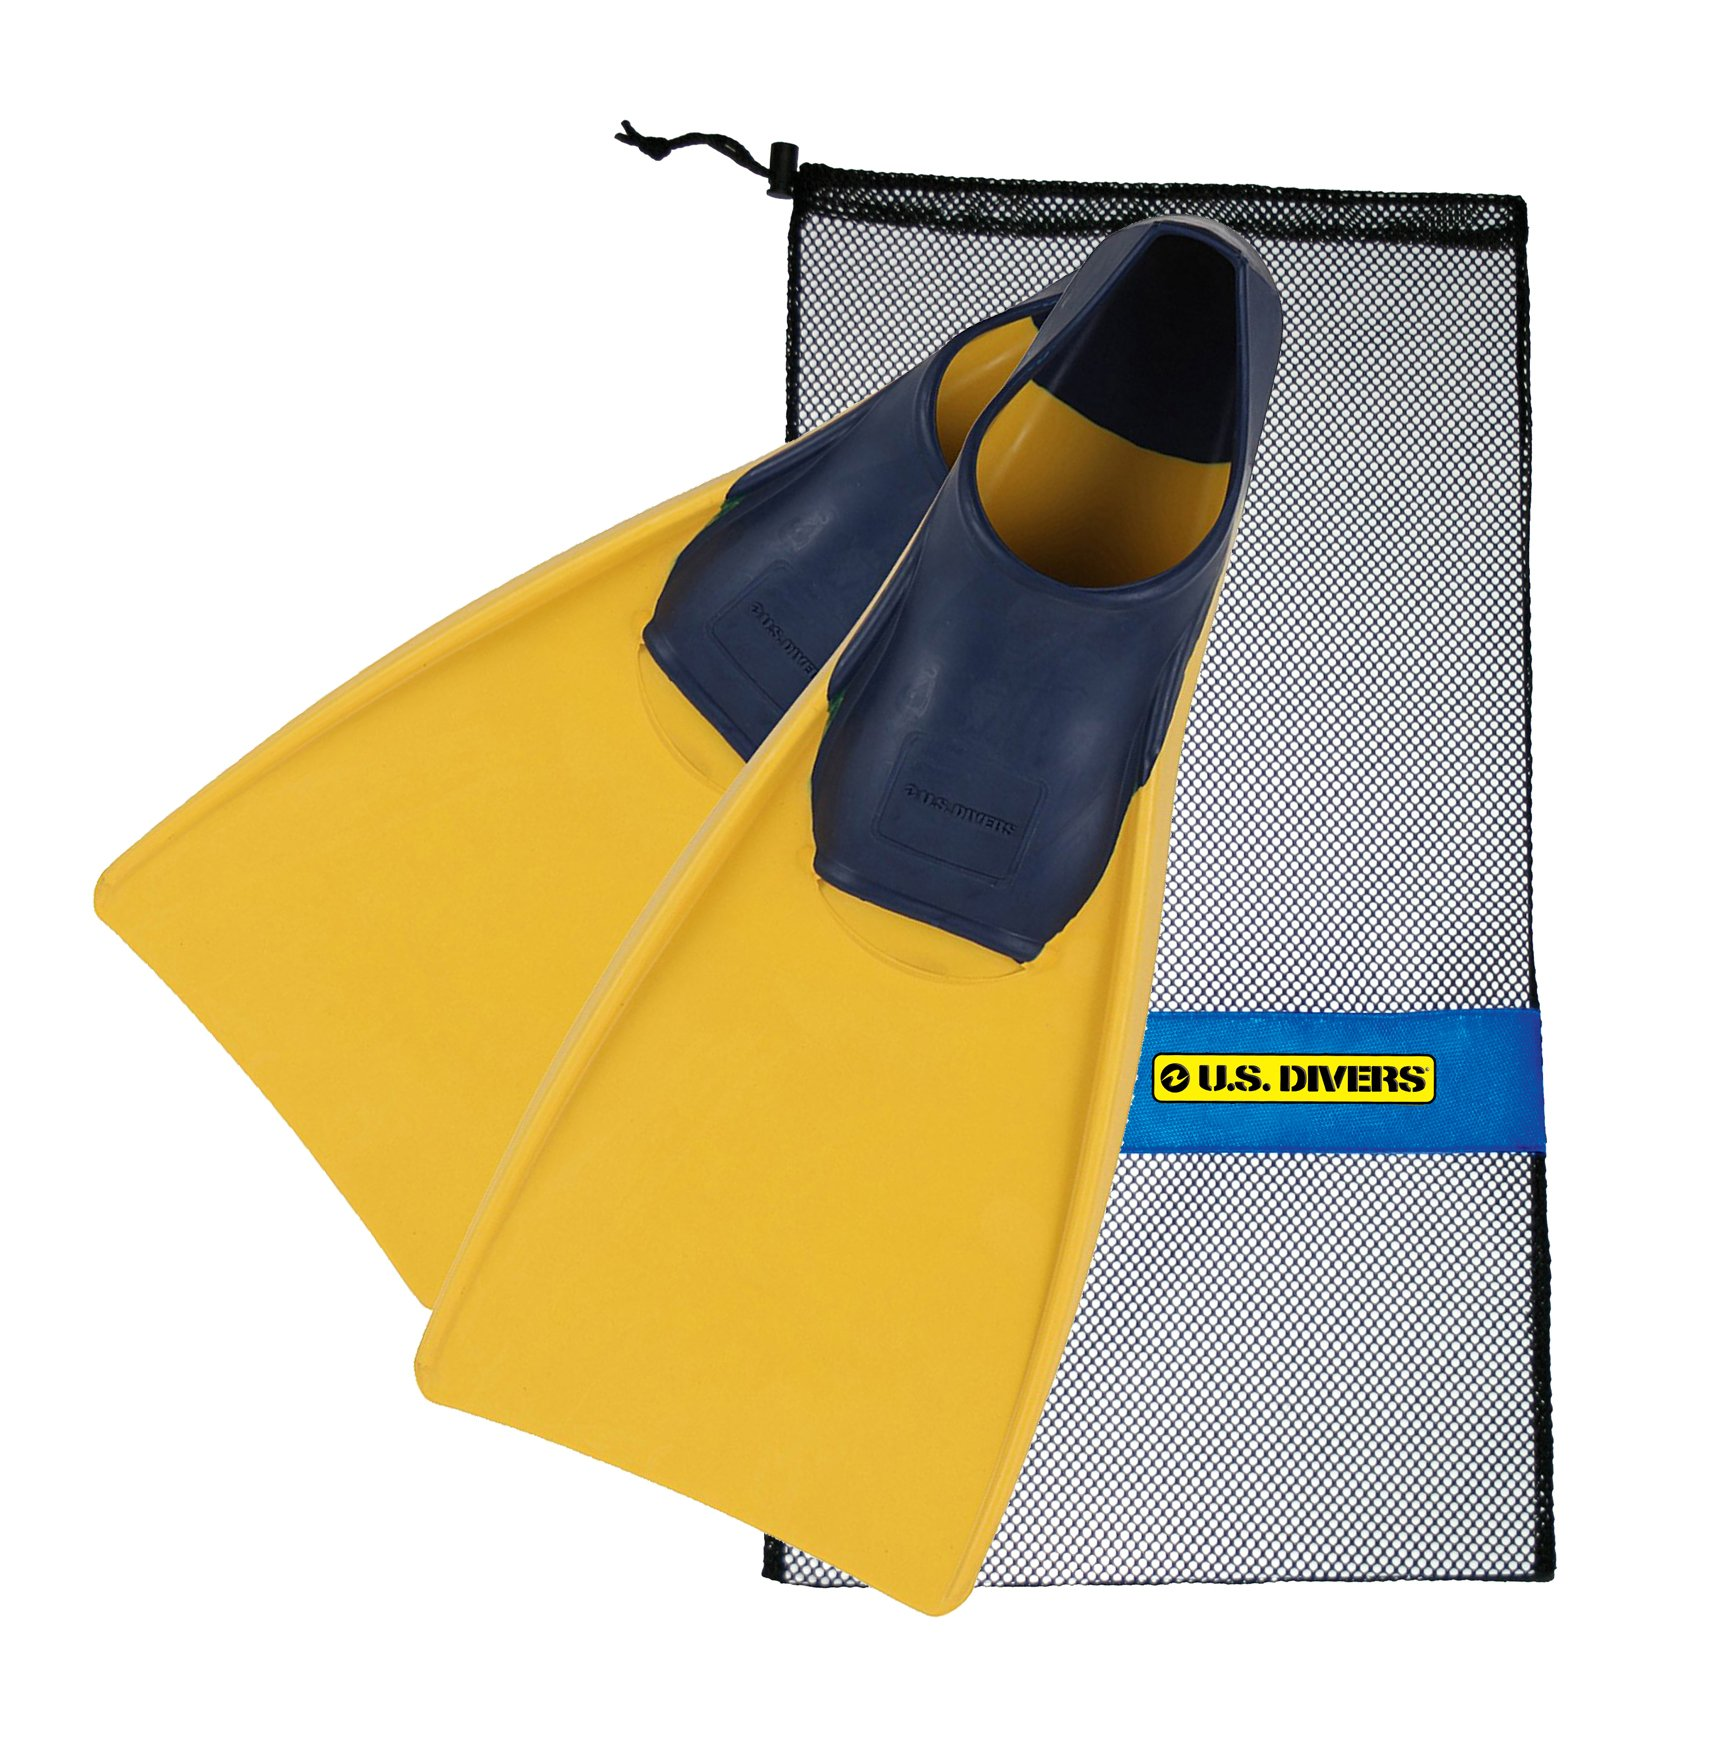 U.S. Divers Sea Lion Junior Floating Fins, With Bag, Junior Large (childs 1-3), Yellow by U.S. Divers